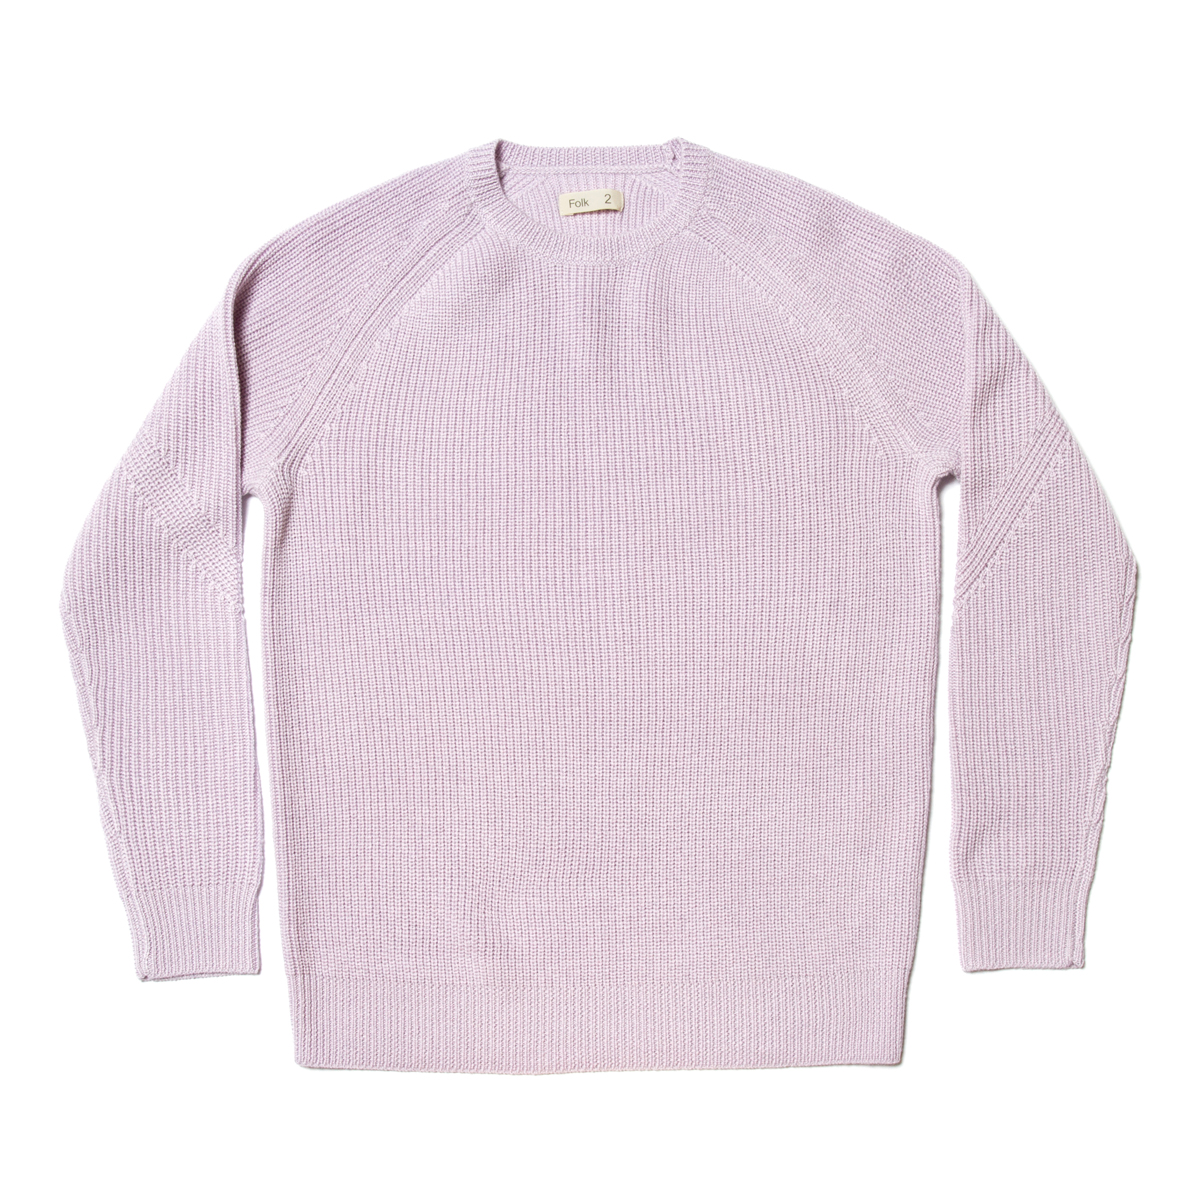 Folk Ribs Jumper £160